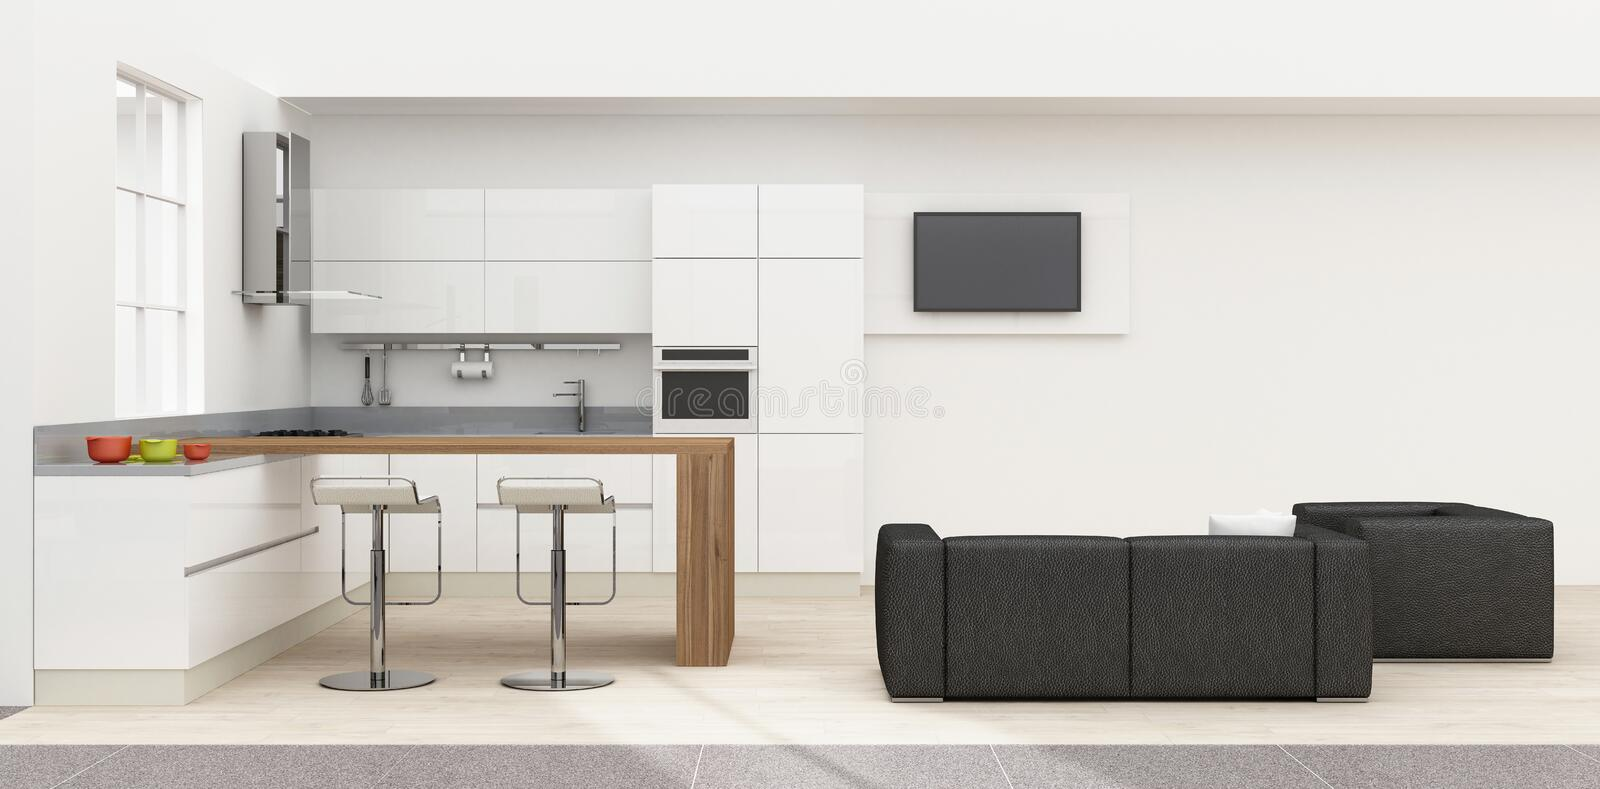 Kitchen interior 3D rendering vector illustration